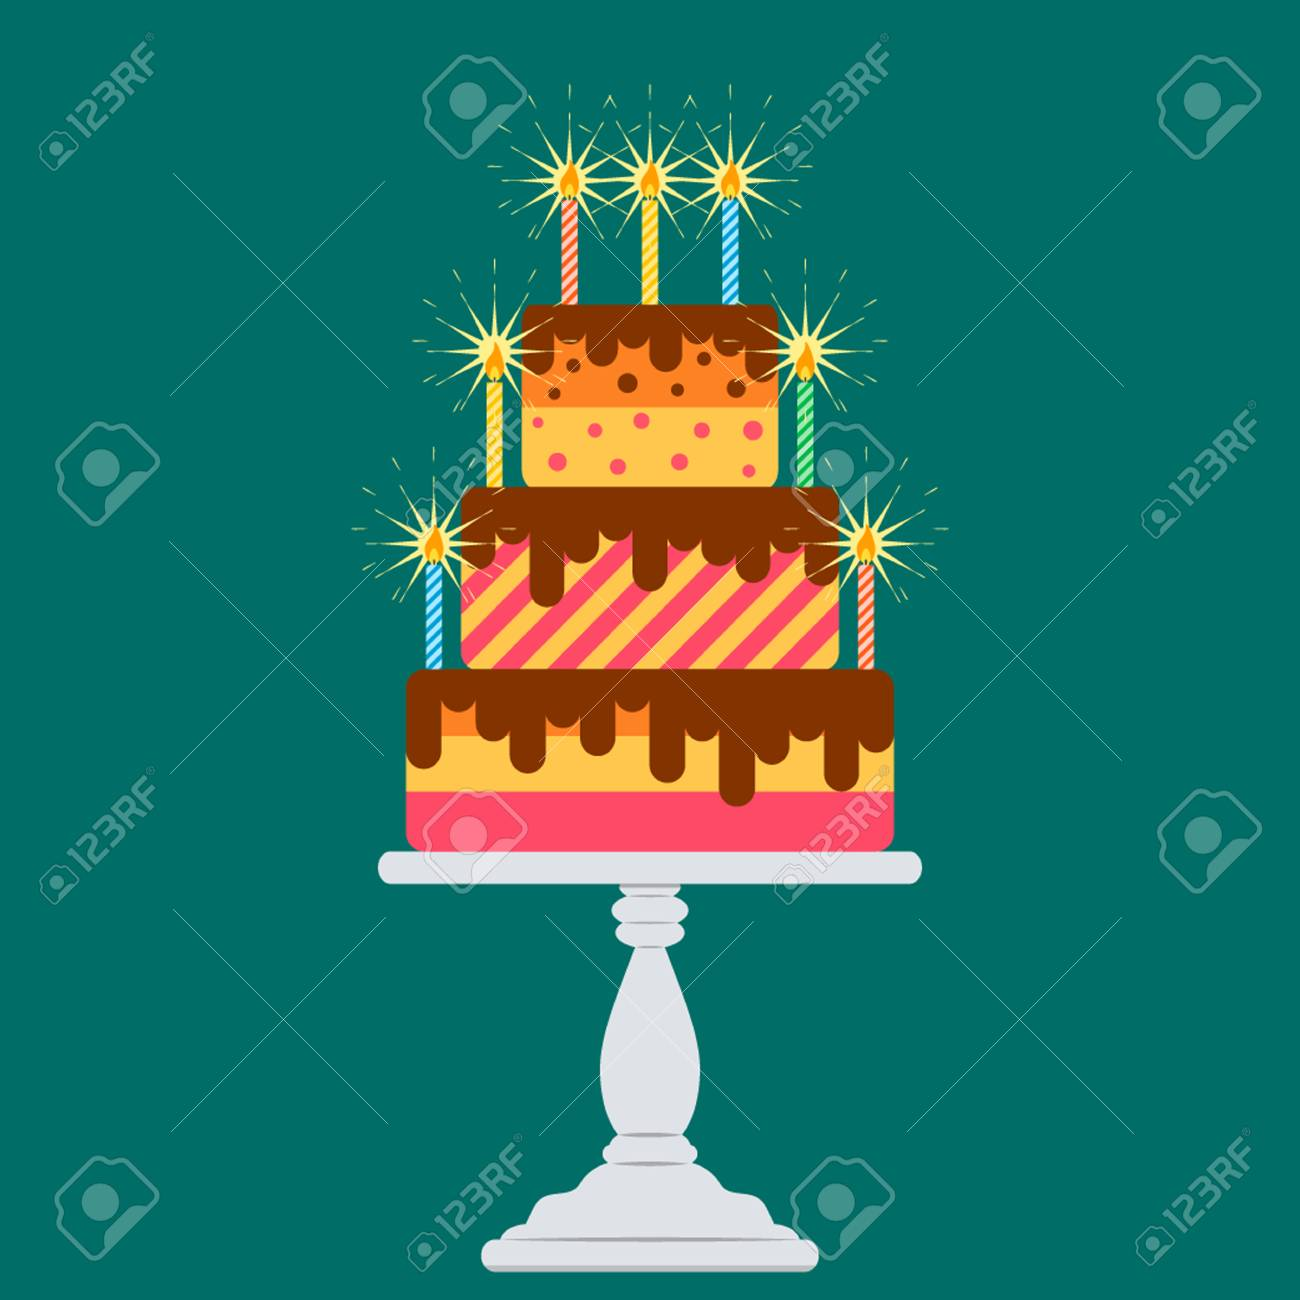 Big Cake With Candles On The Table Flat Vector Illustration Stock